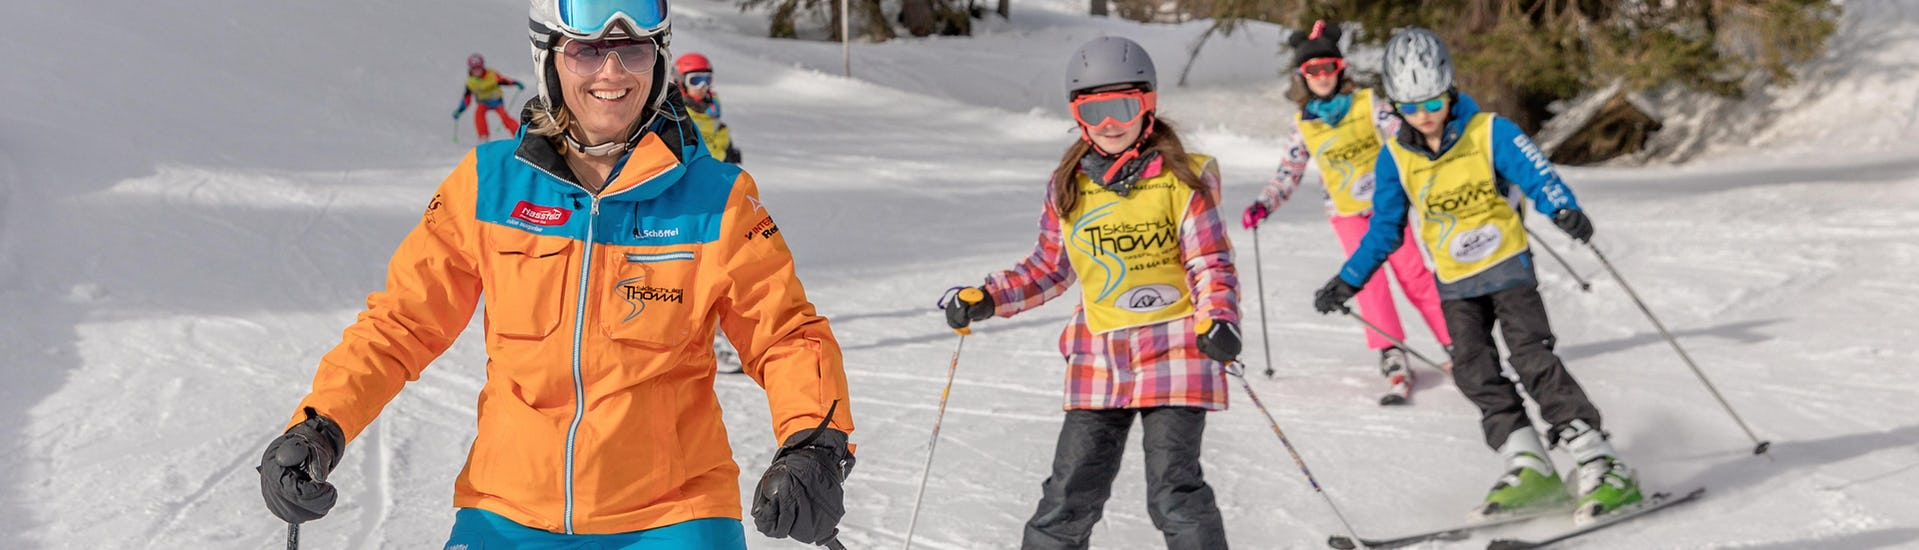 Ski Lessons for Teenagers (13-18 years) - Beginners